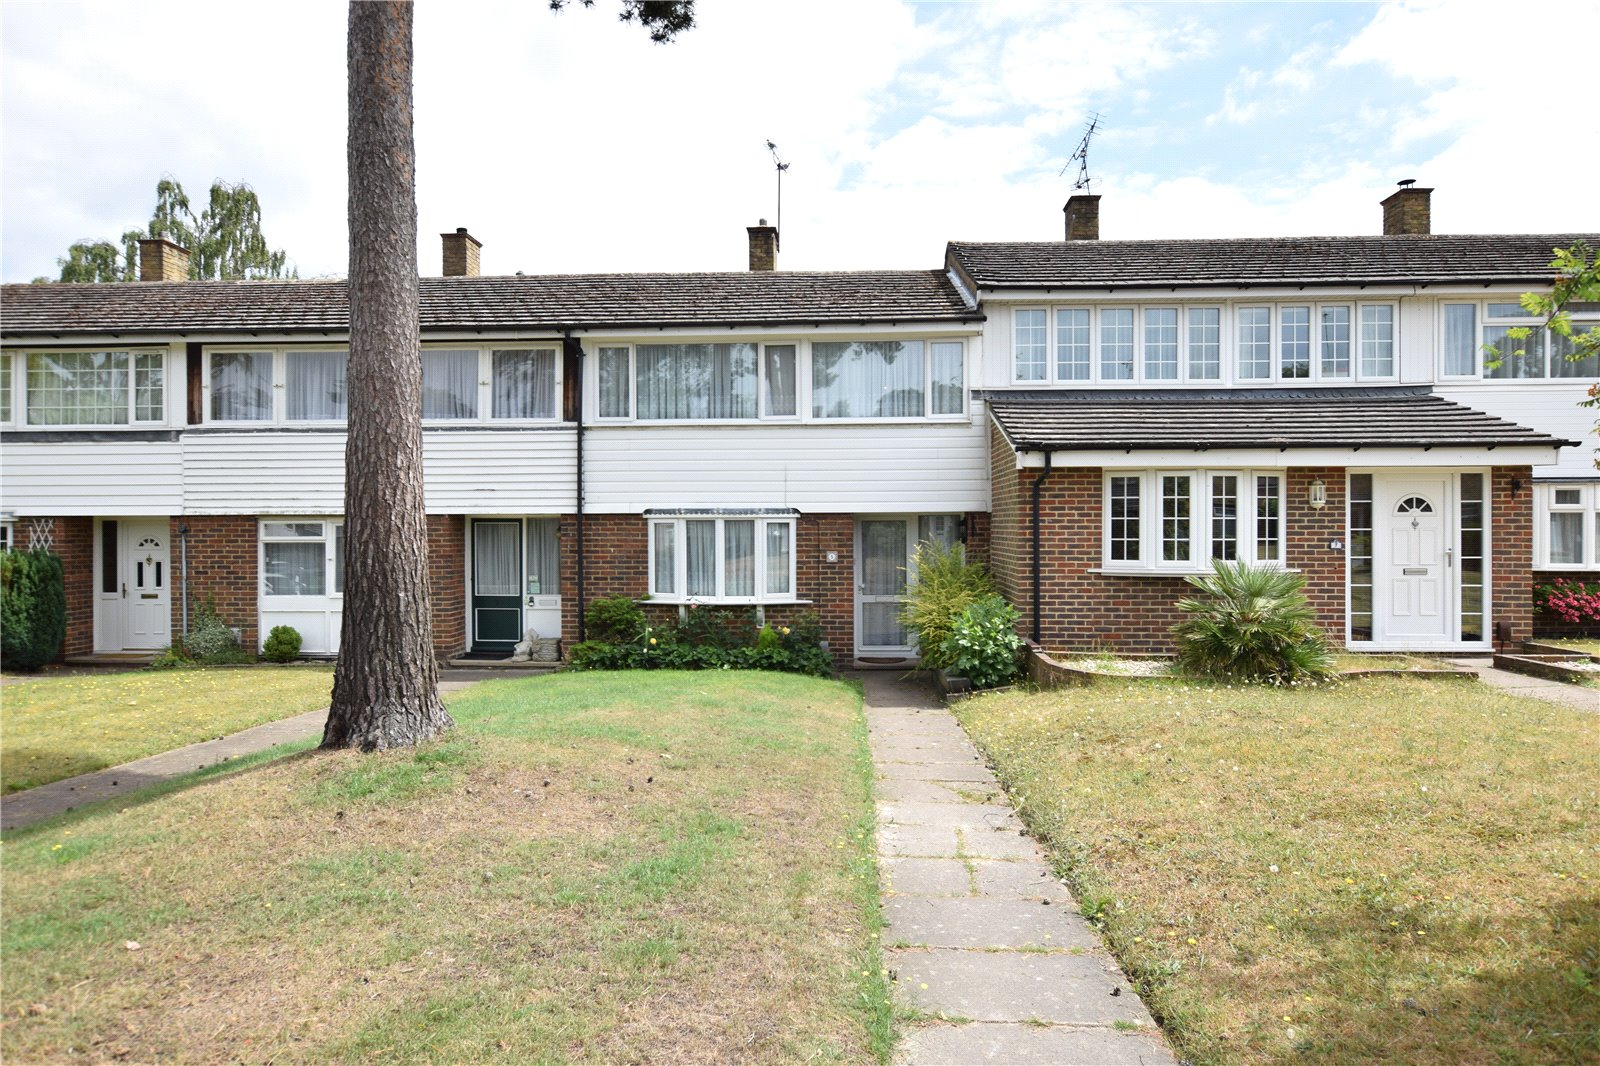 3 Bedrooms Terraced House for sale in Hardwell Way, Bracknell, Berkshire, RG12